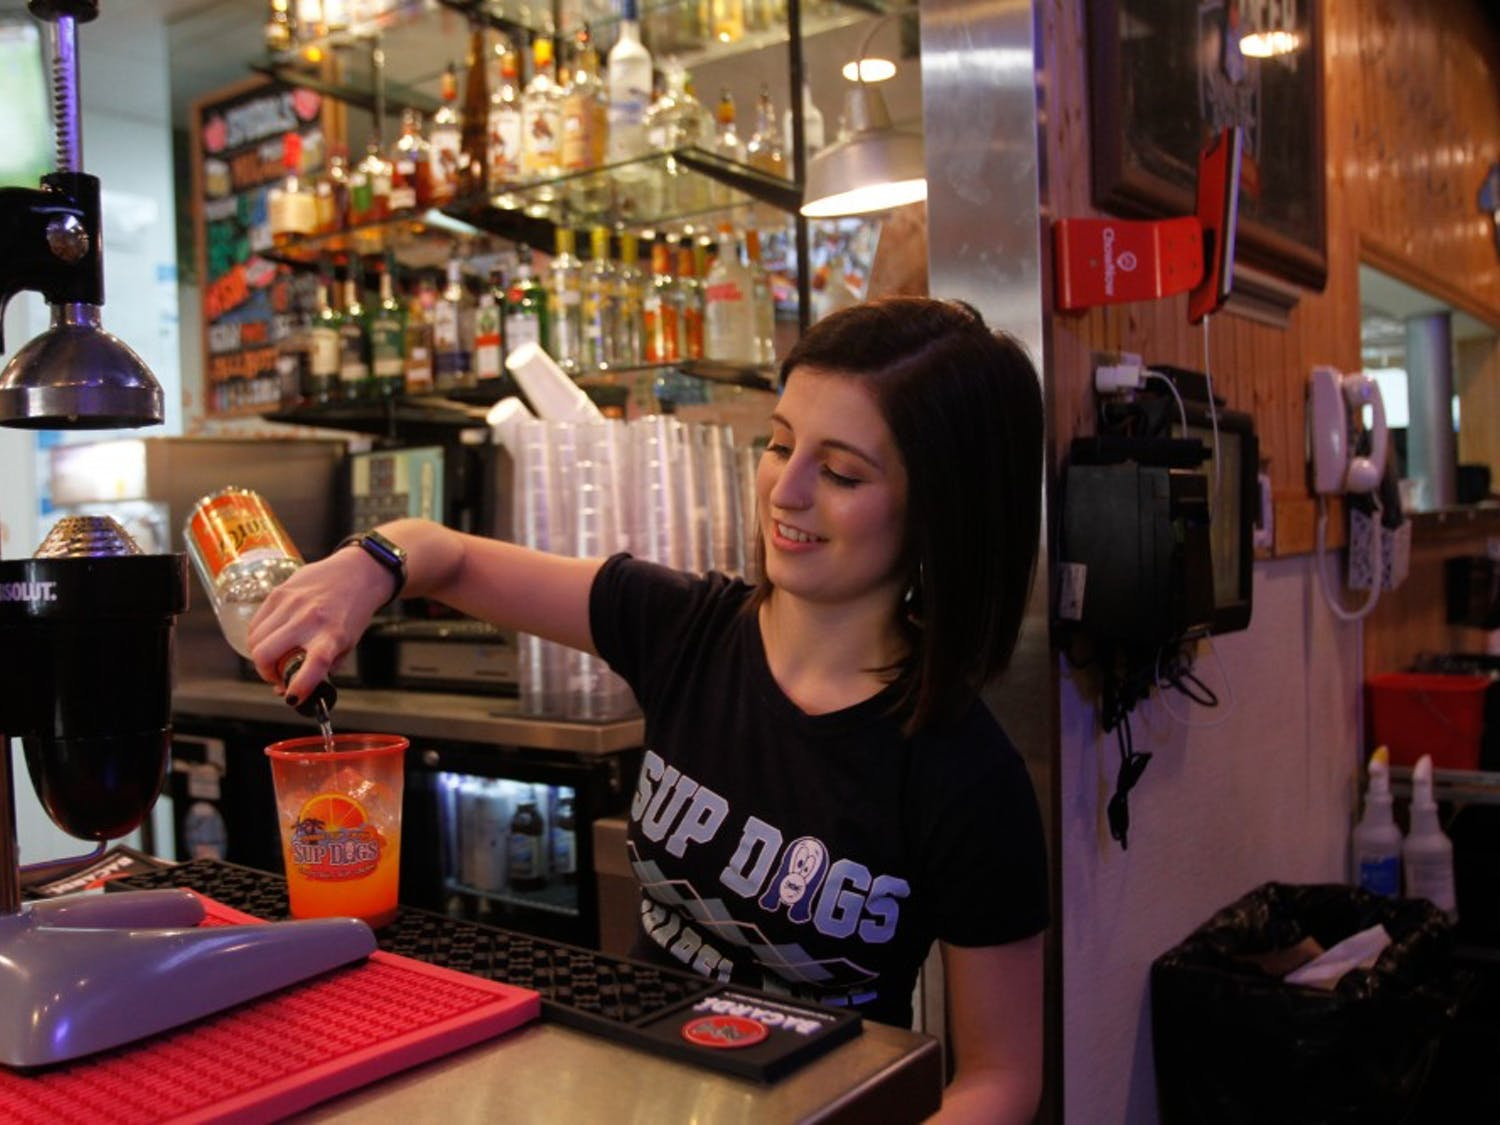 Senior reporting major Sara Pequeño works at popular Franklin Street bar, Sup Dogs, and is often recognized by her student peers while in class and at work.